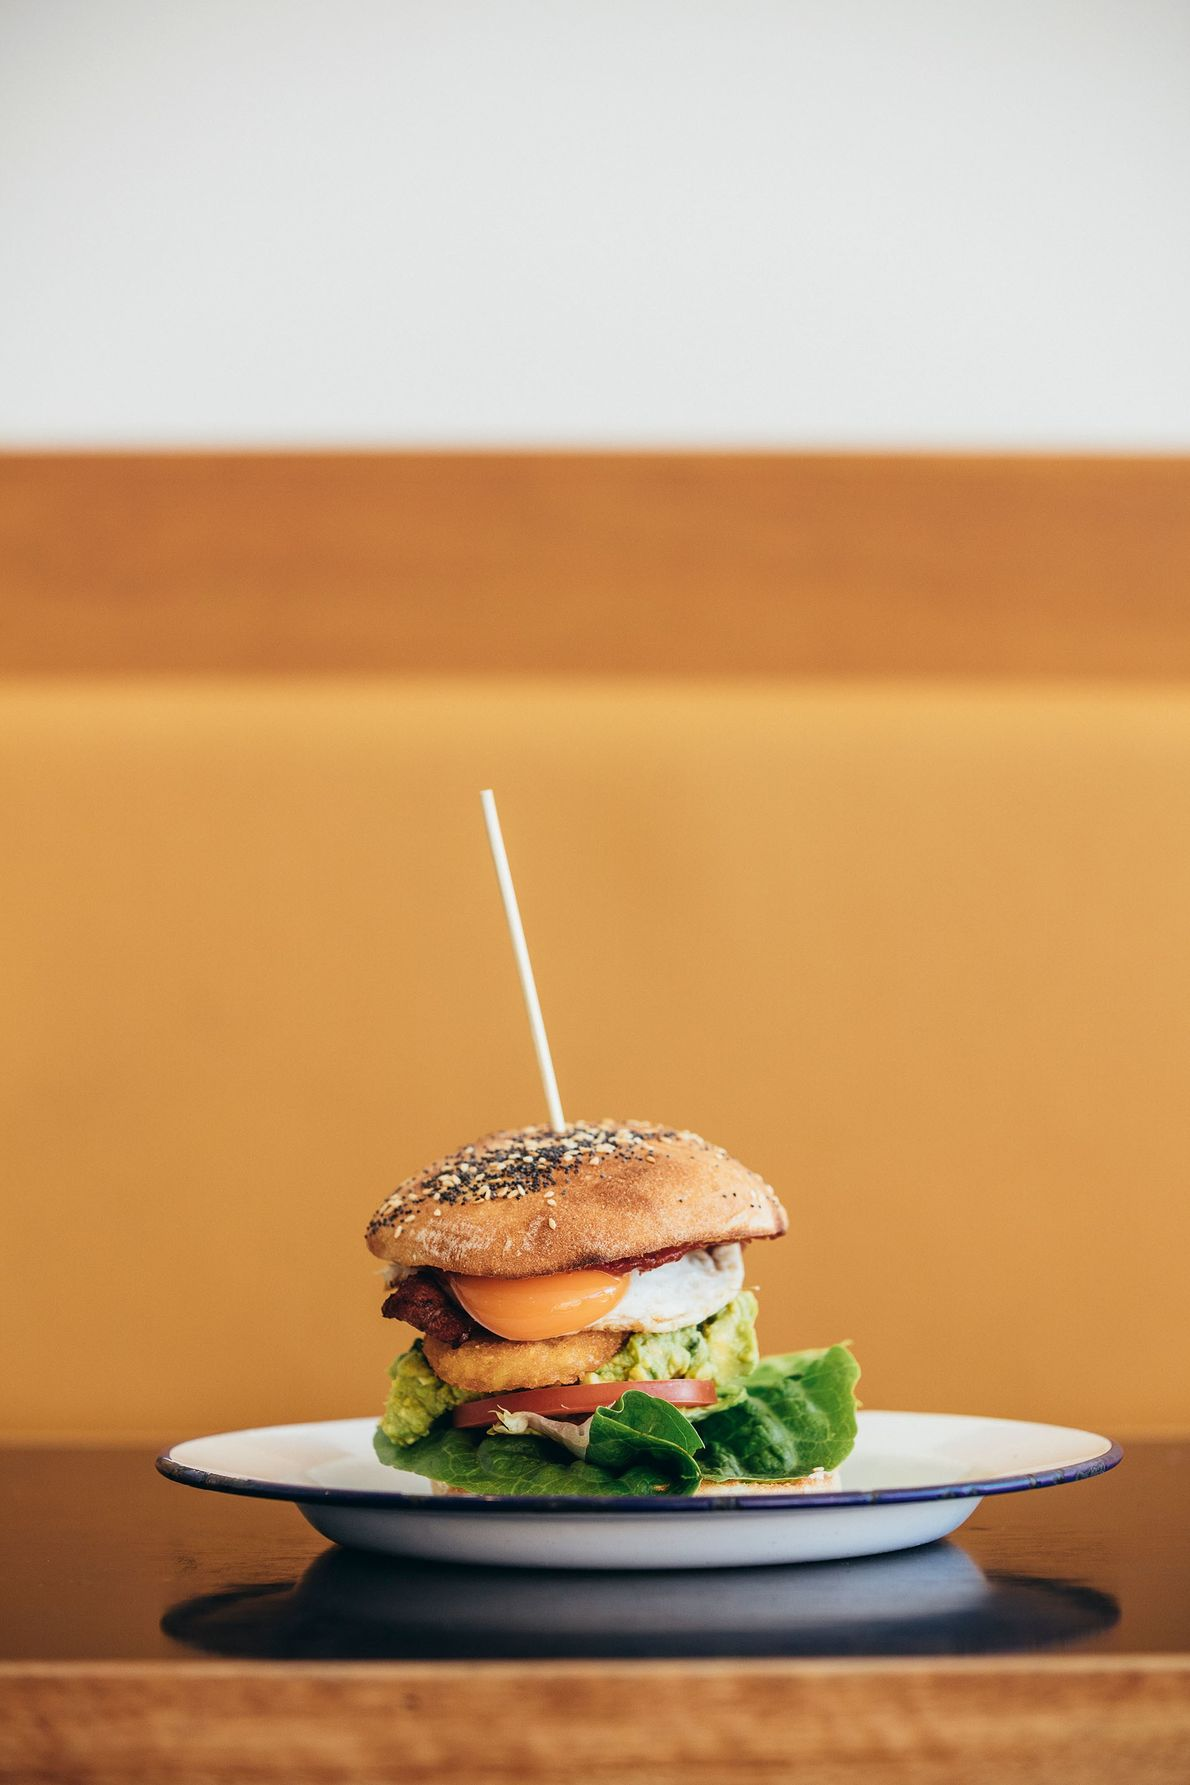 The B.O.M burger at The Bottle of Milk in Lorne, comprising prime beef, cheese, bacon, egg, ...